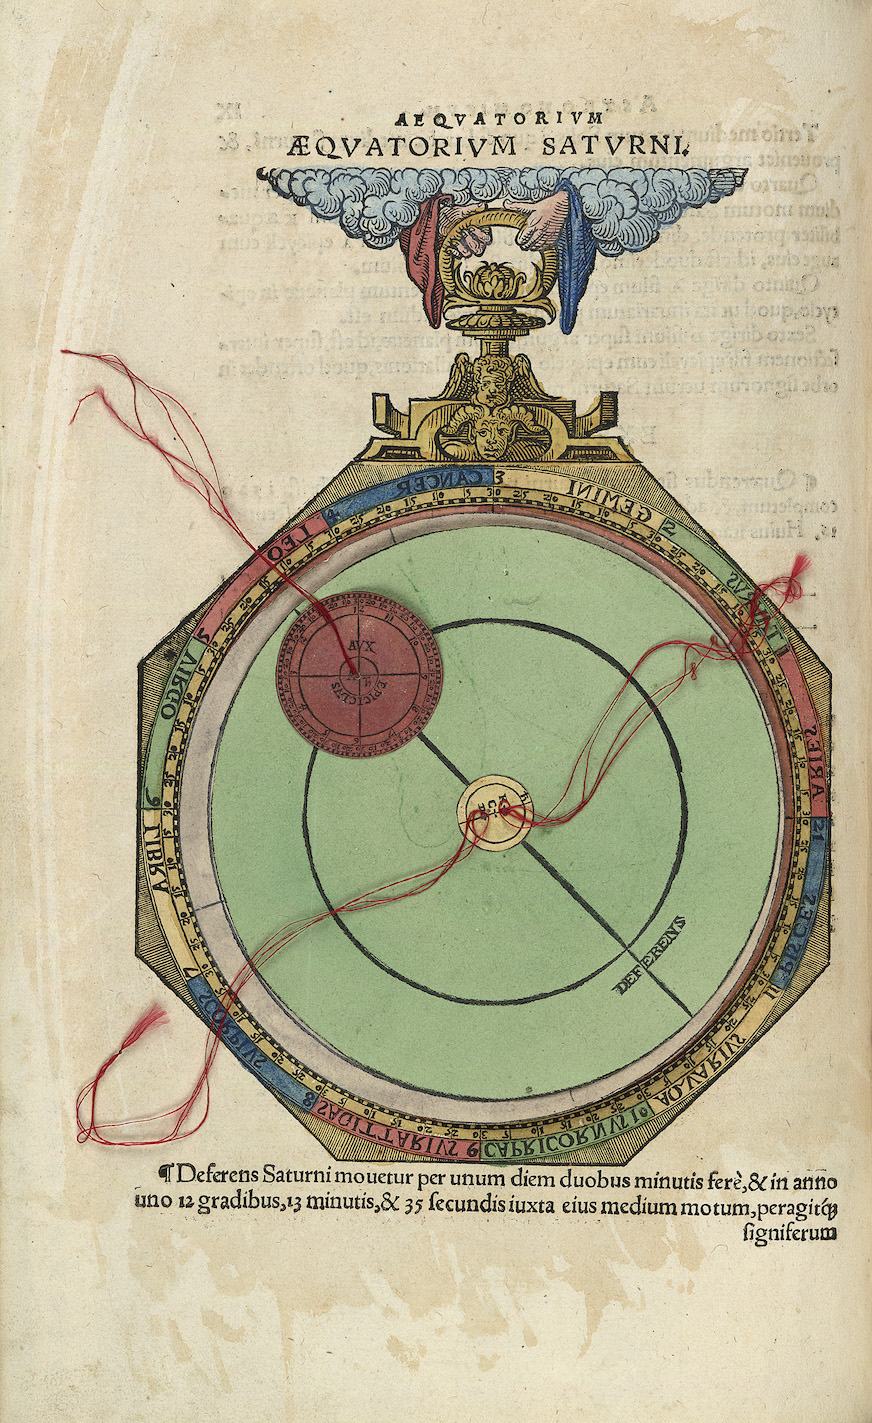 """Johannes Schöner, Opera mathematica (Nurnberg: in officina Ioannis Montani & Ulrici Neuber, 1551), c. 9v of the Aequatorium Astronomicum. Volvelle representing the deferent and the epicycle of Saturn."""